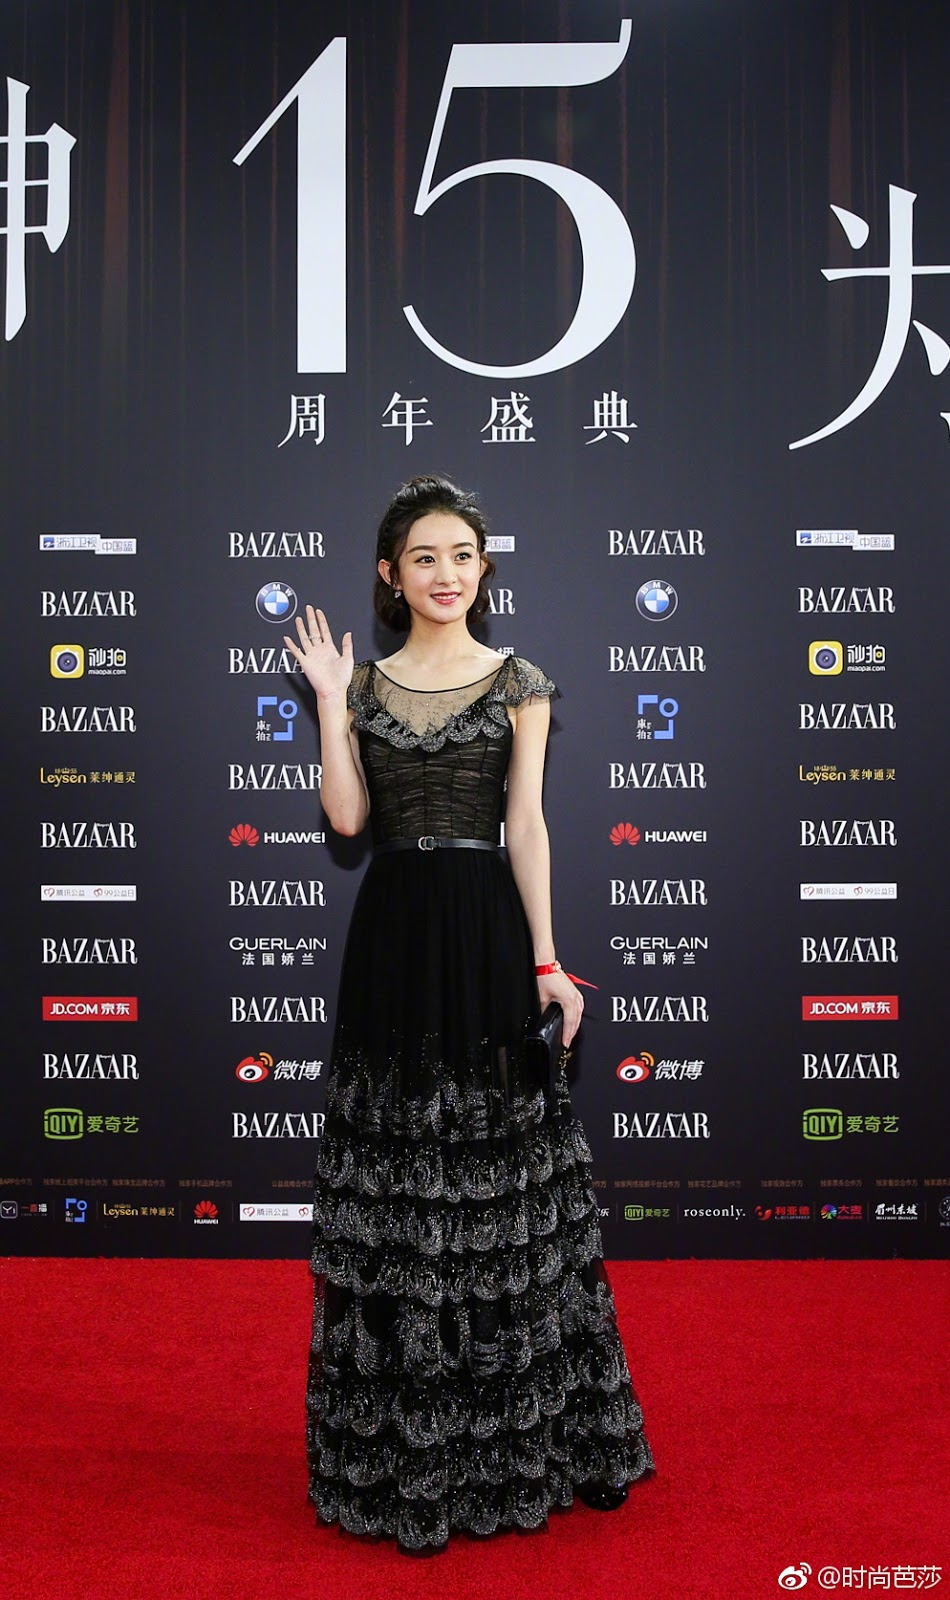 Red Carpet Zhao Li Ying